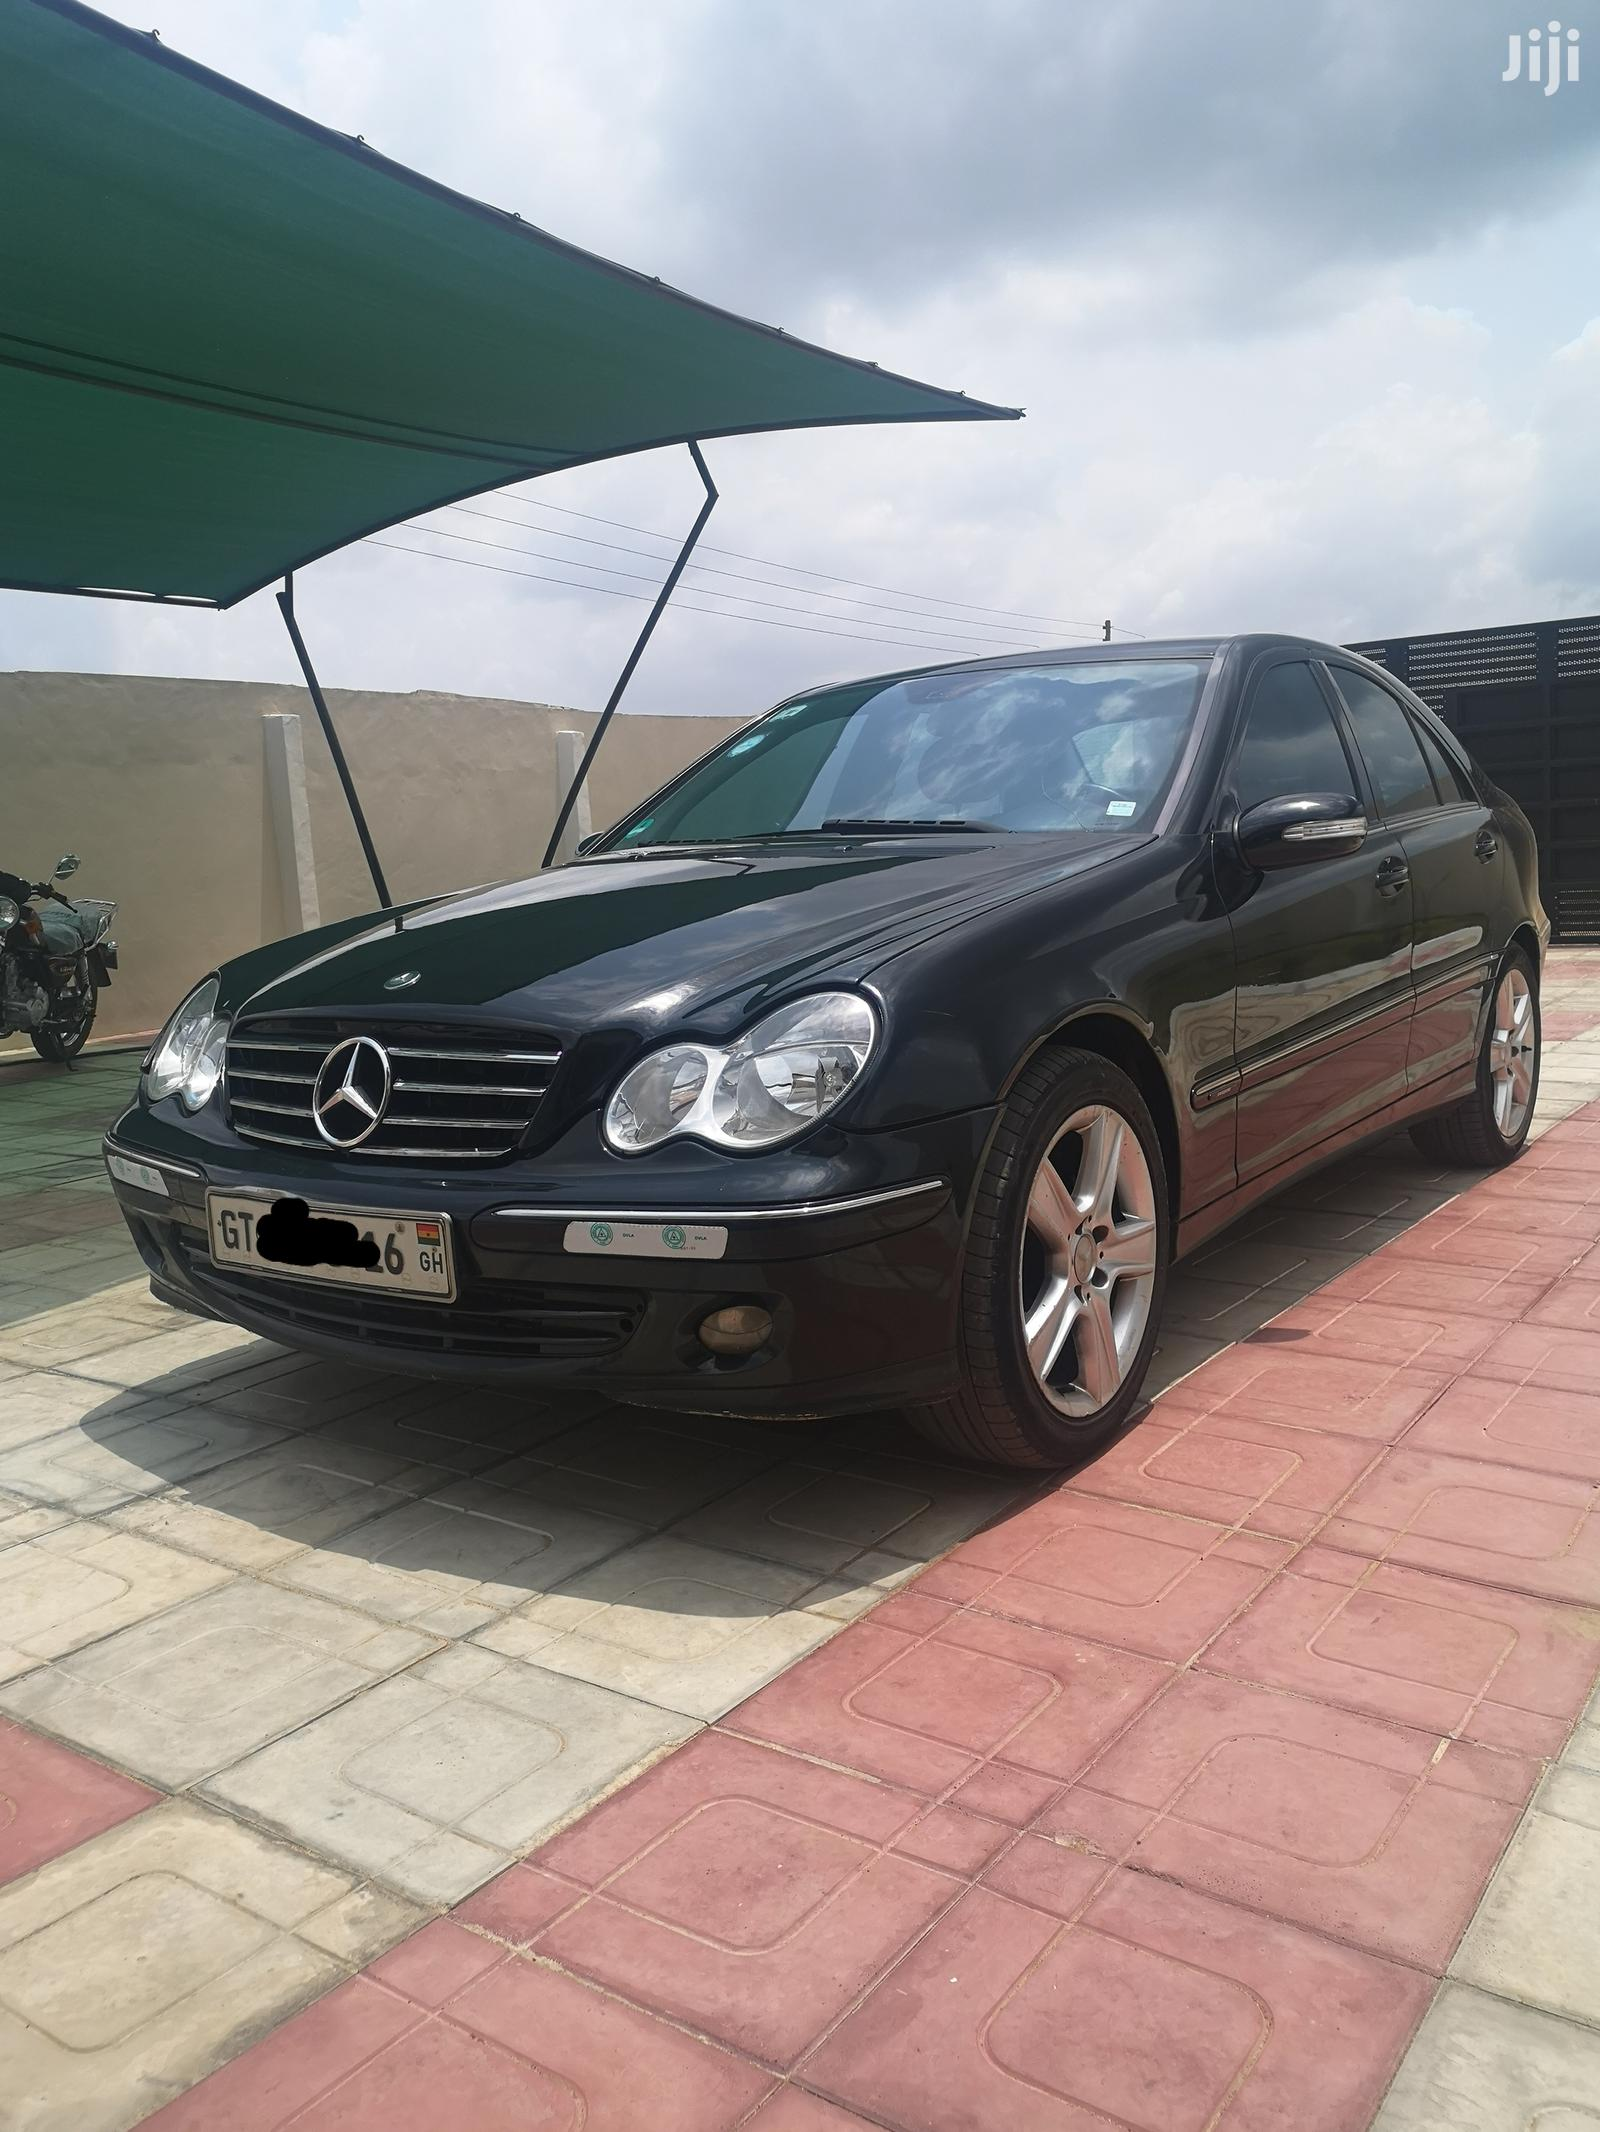 Mercedes-Benz C180 2006 Black | Cars for sale in Ga South Municipal, Greater Accra, Ghana